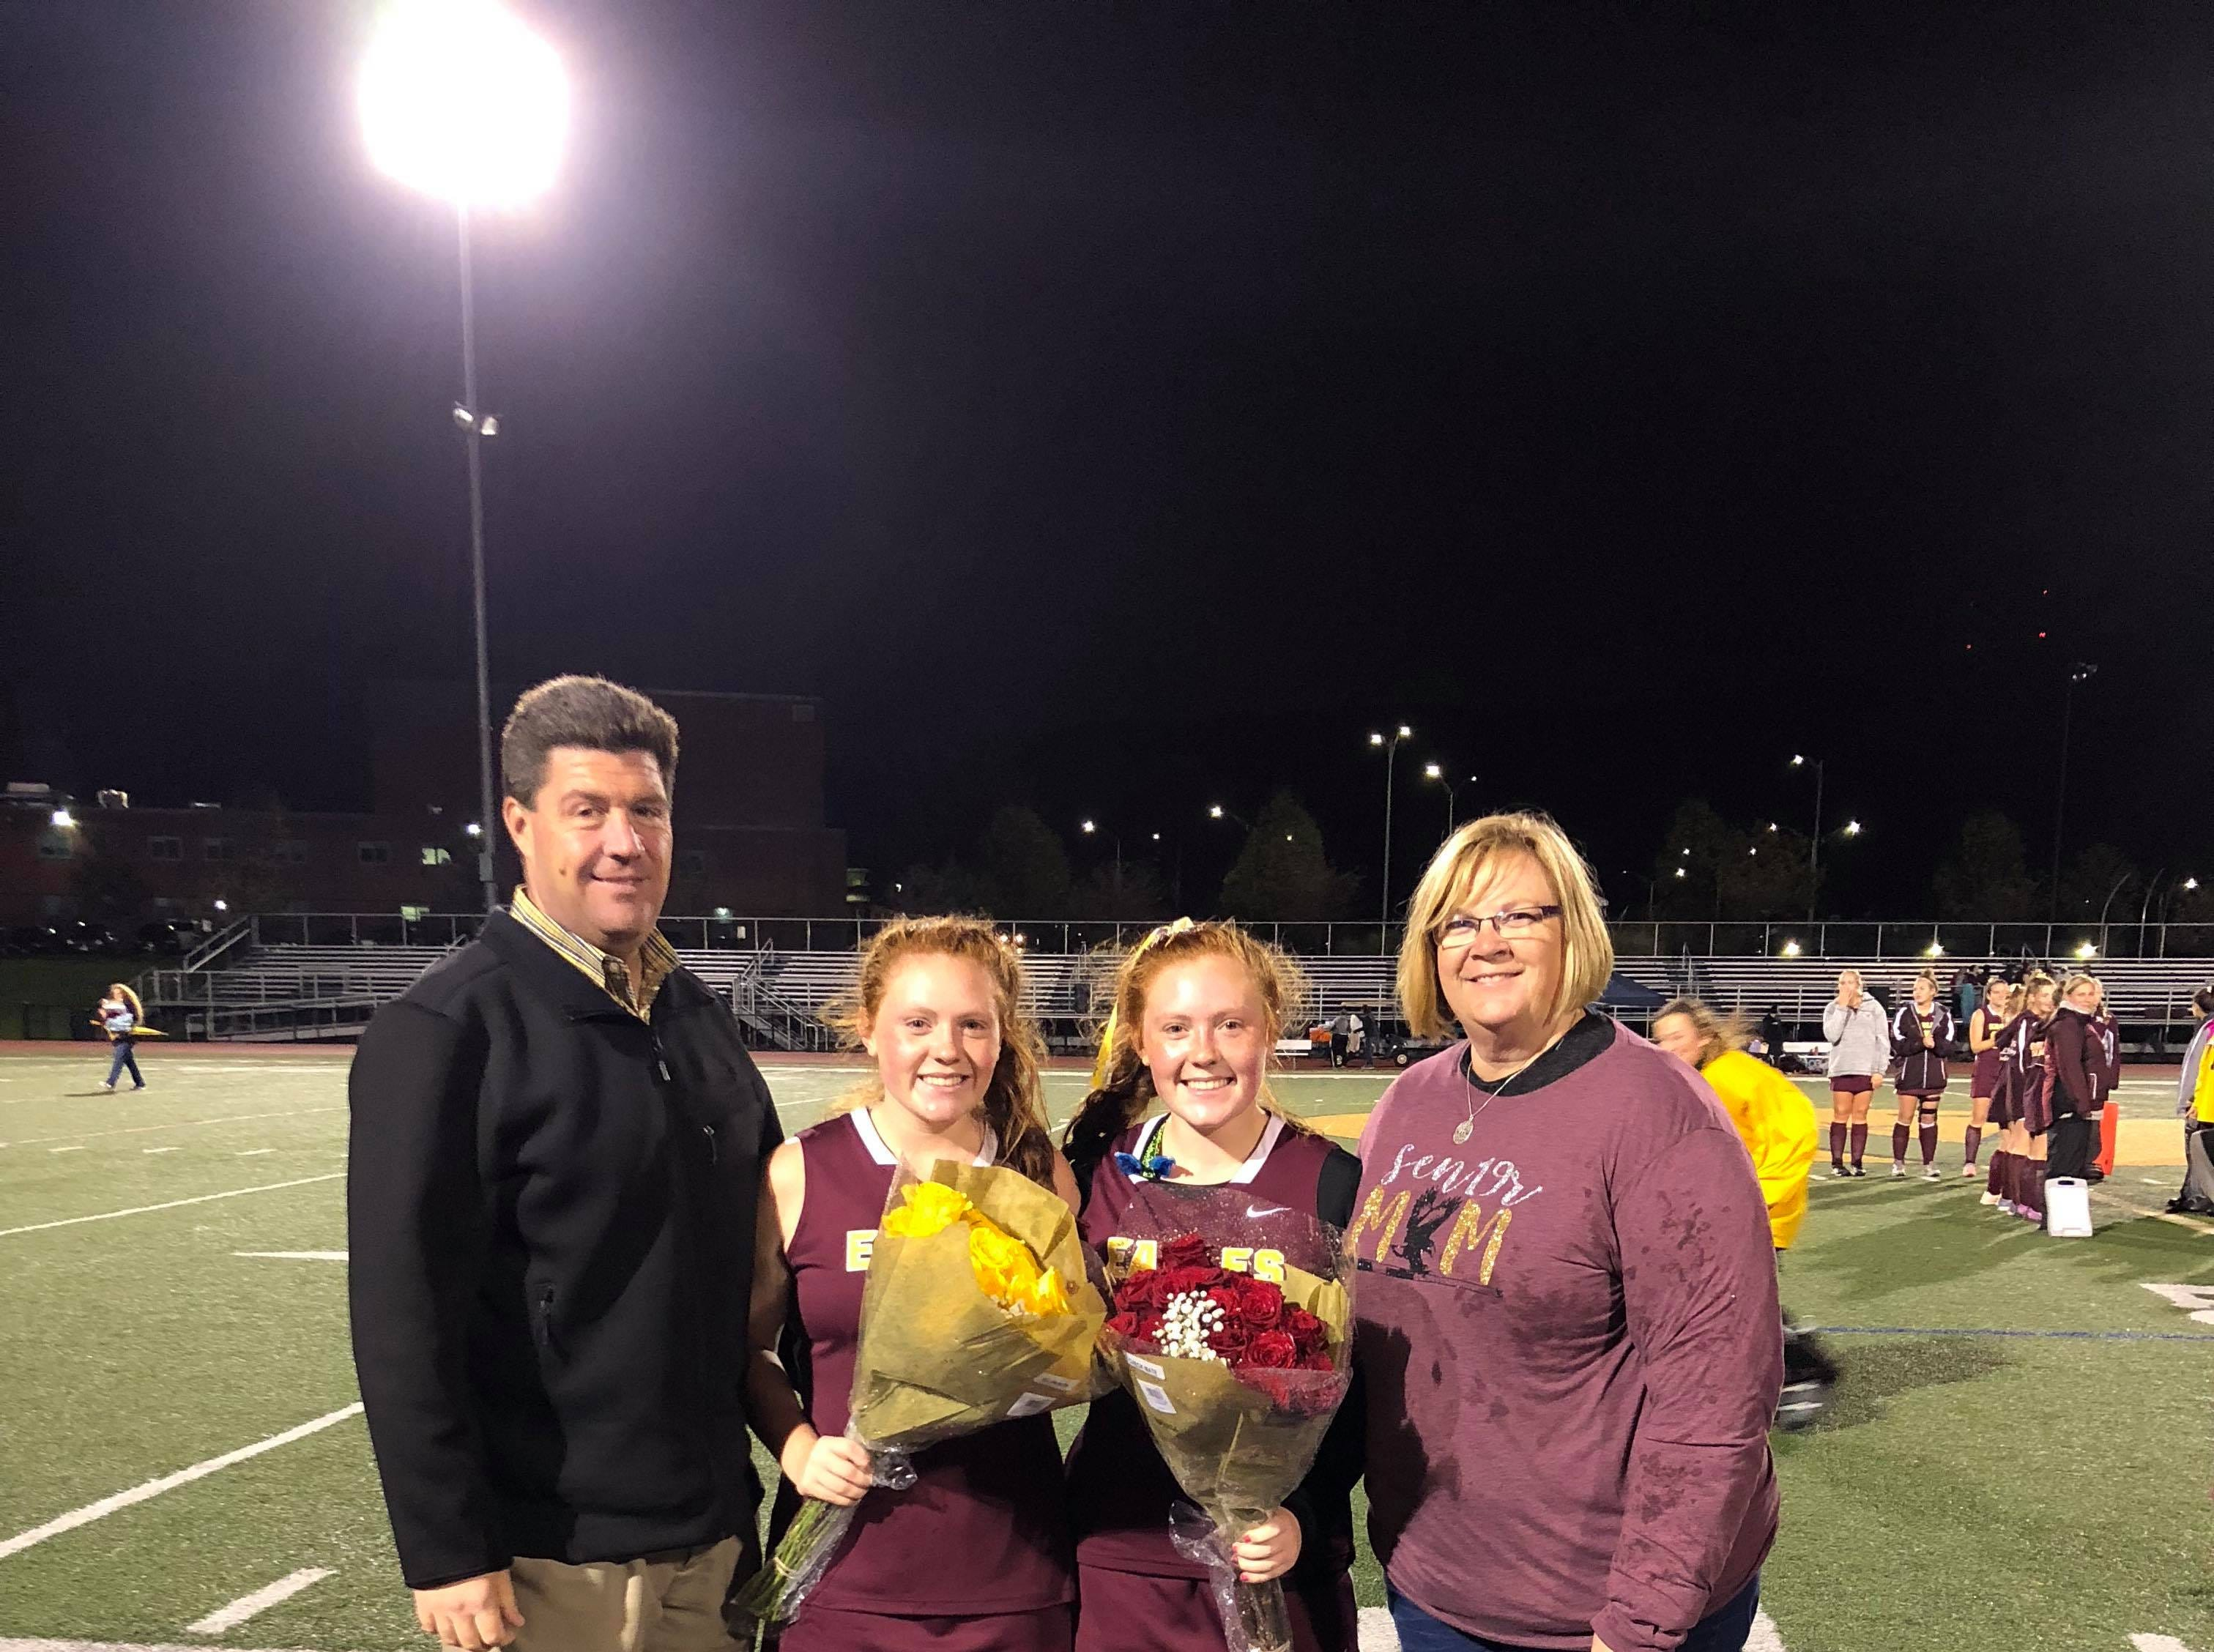 Madison Breward (#21), left, and Mary Kate Breward (#13), right, with their parents, Jim and Kelly Breward